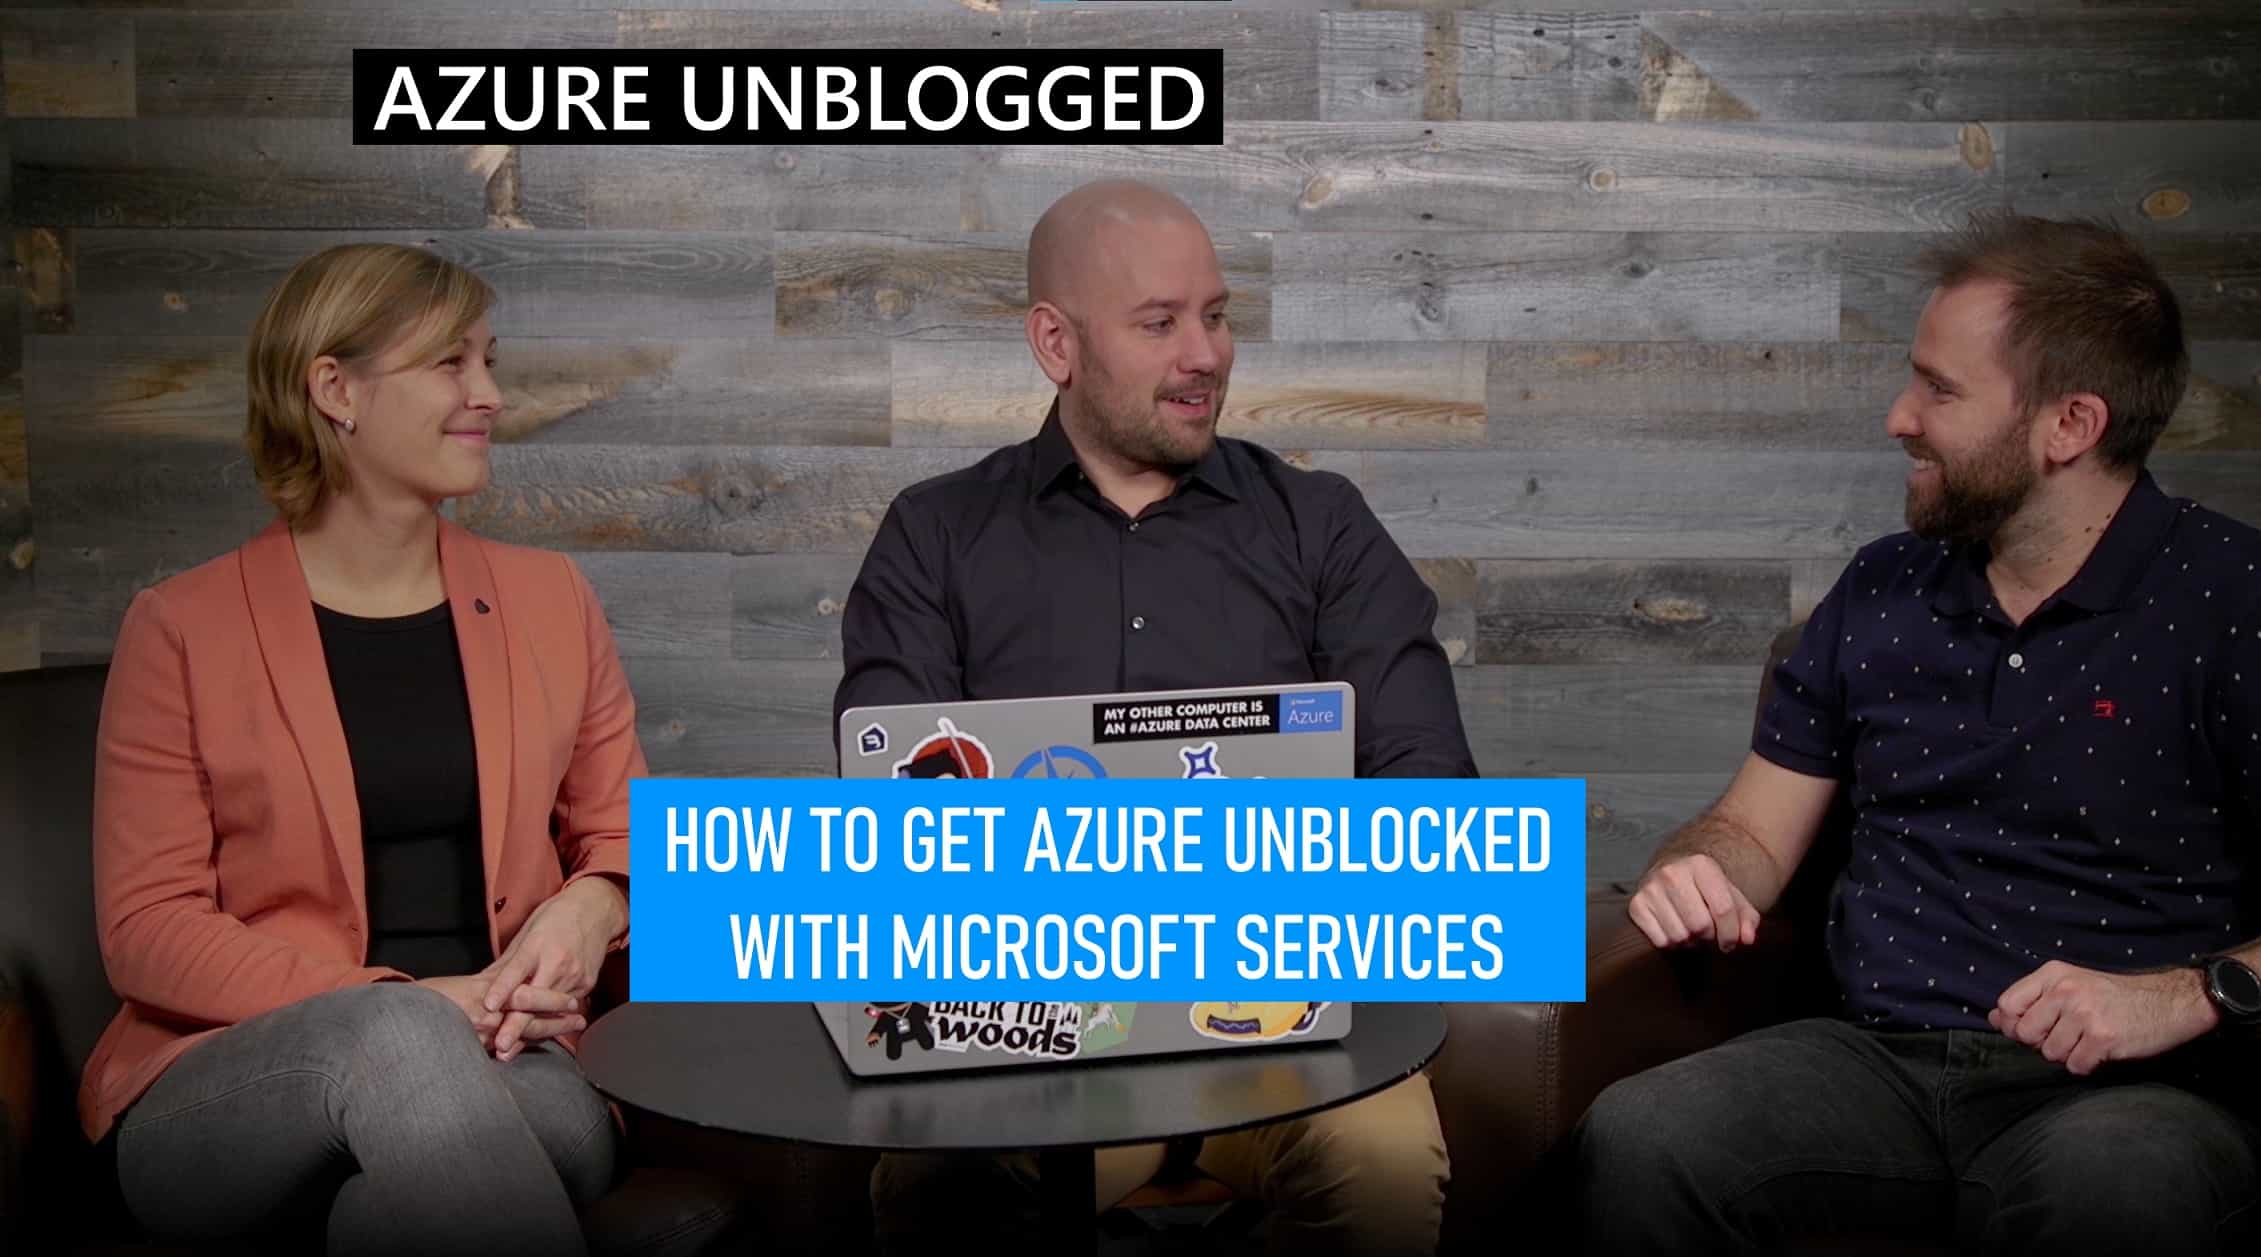 Azure Unblogged - How to get Azure unblocked with Microsoft Services